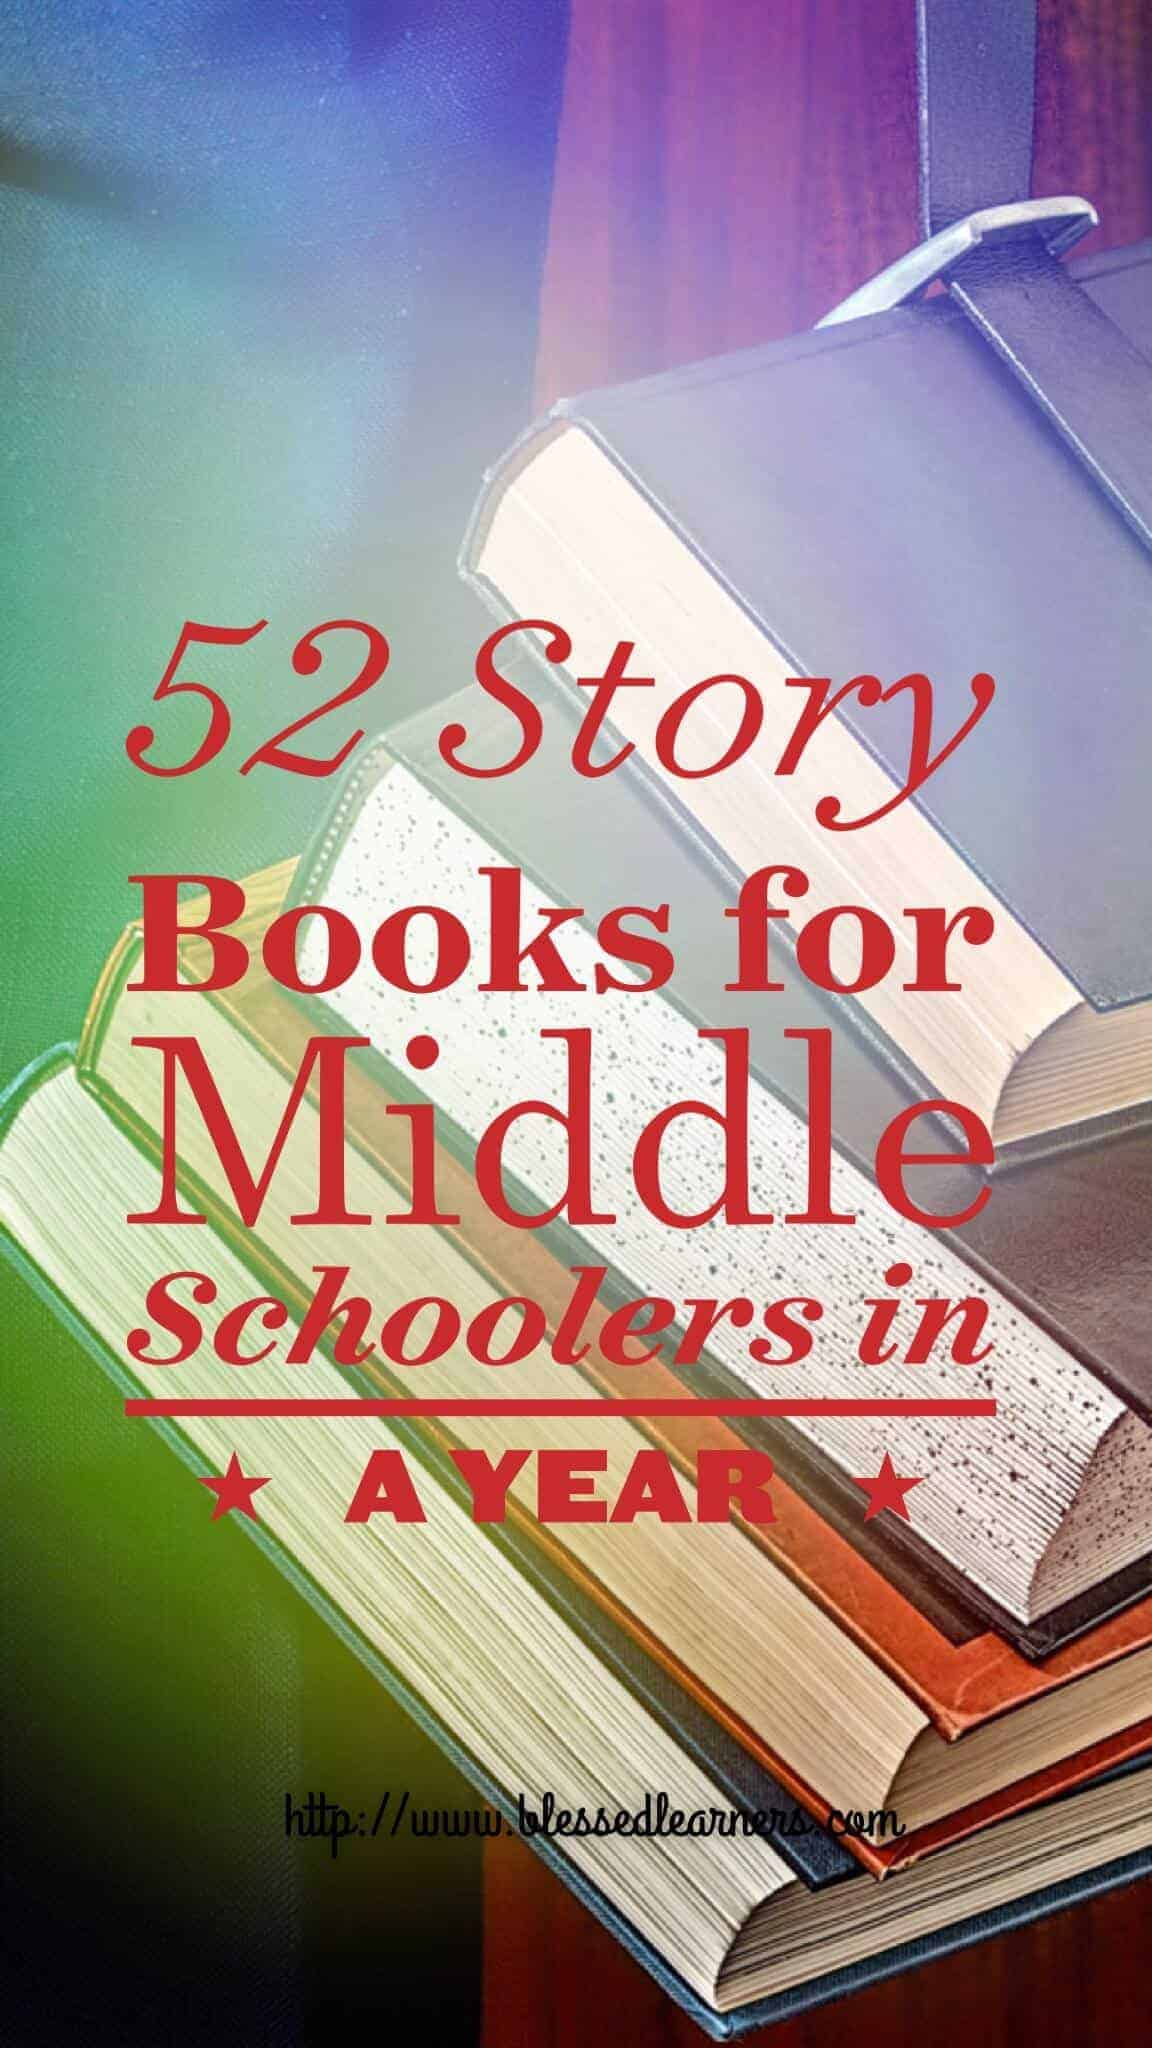 52 Story Books for Middle Schoolers in A year